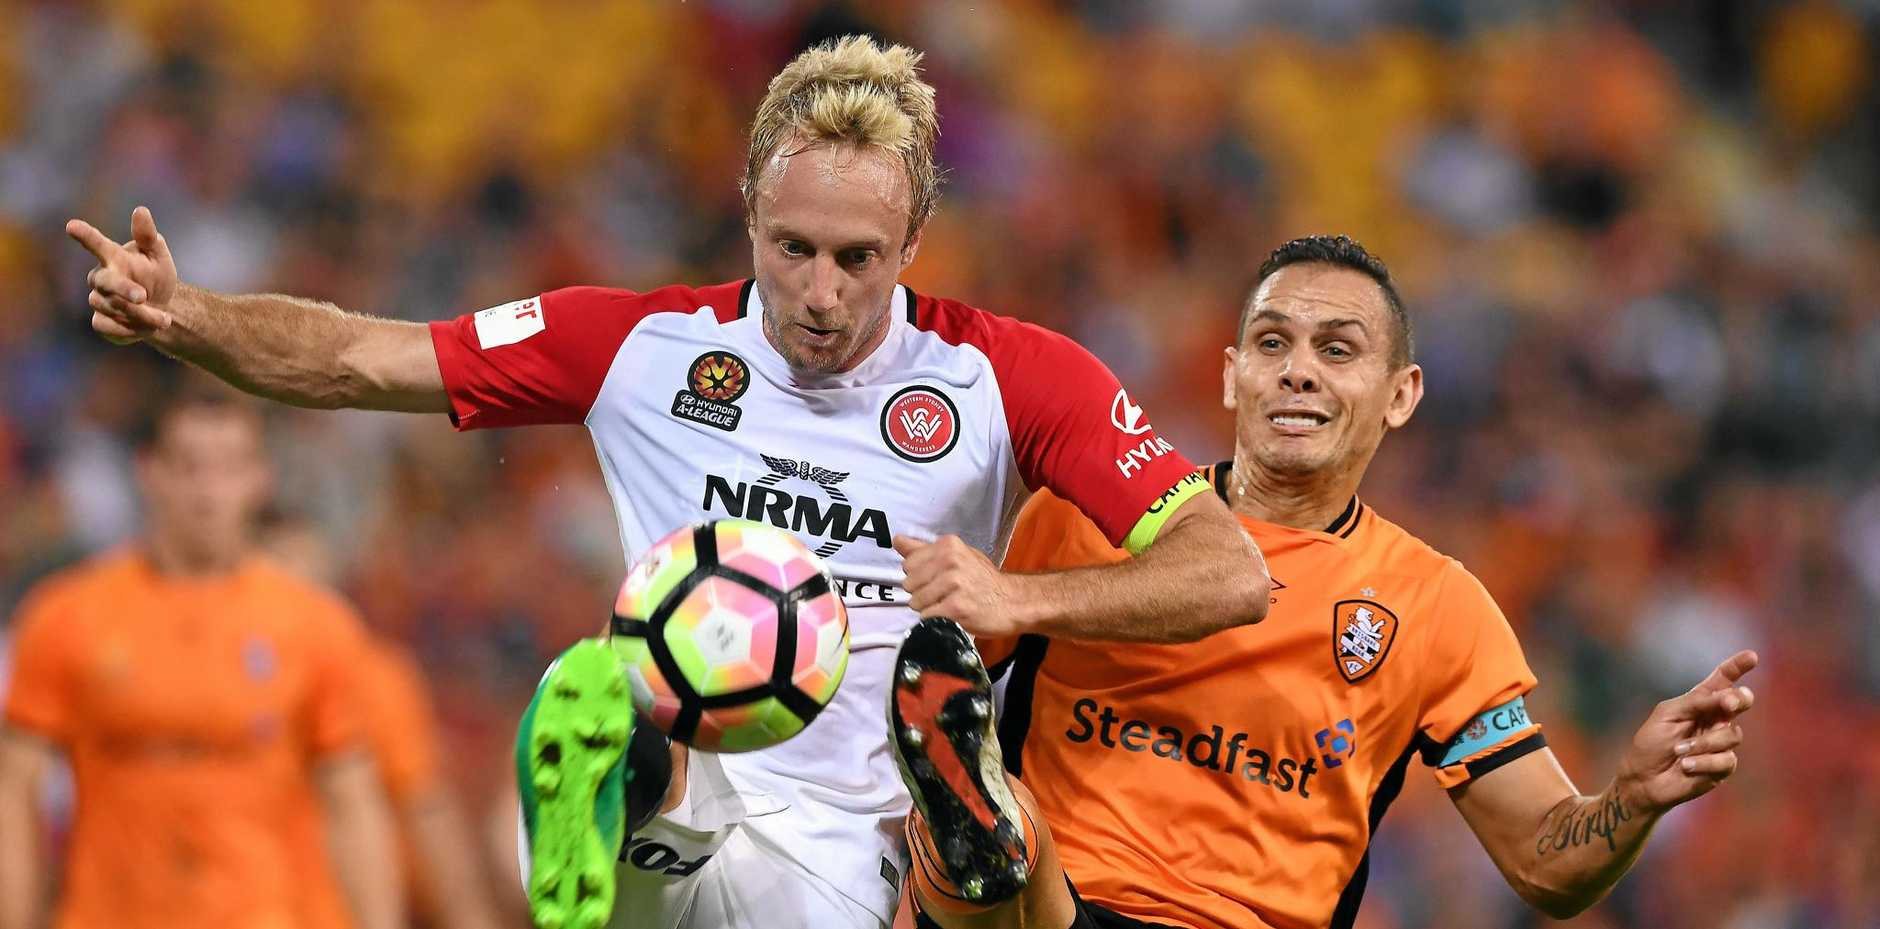 Wanderers player Mitchell Nichols competes with the Roar's Jade North.